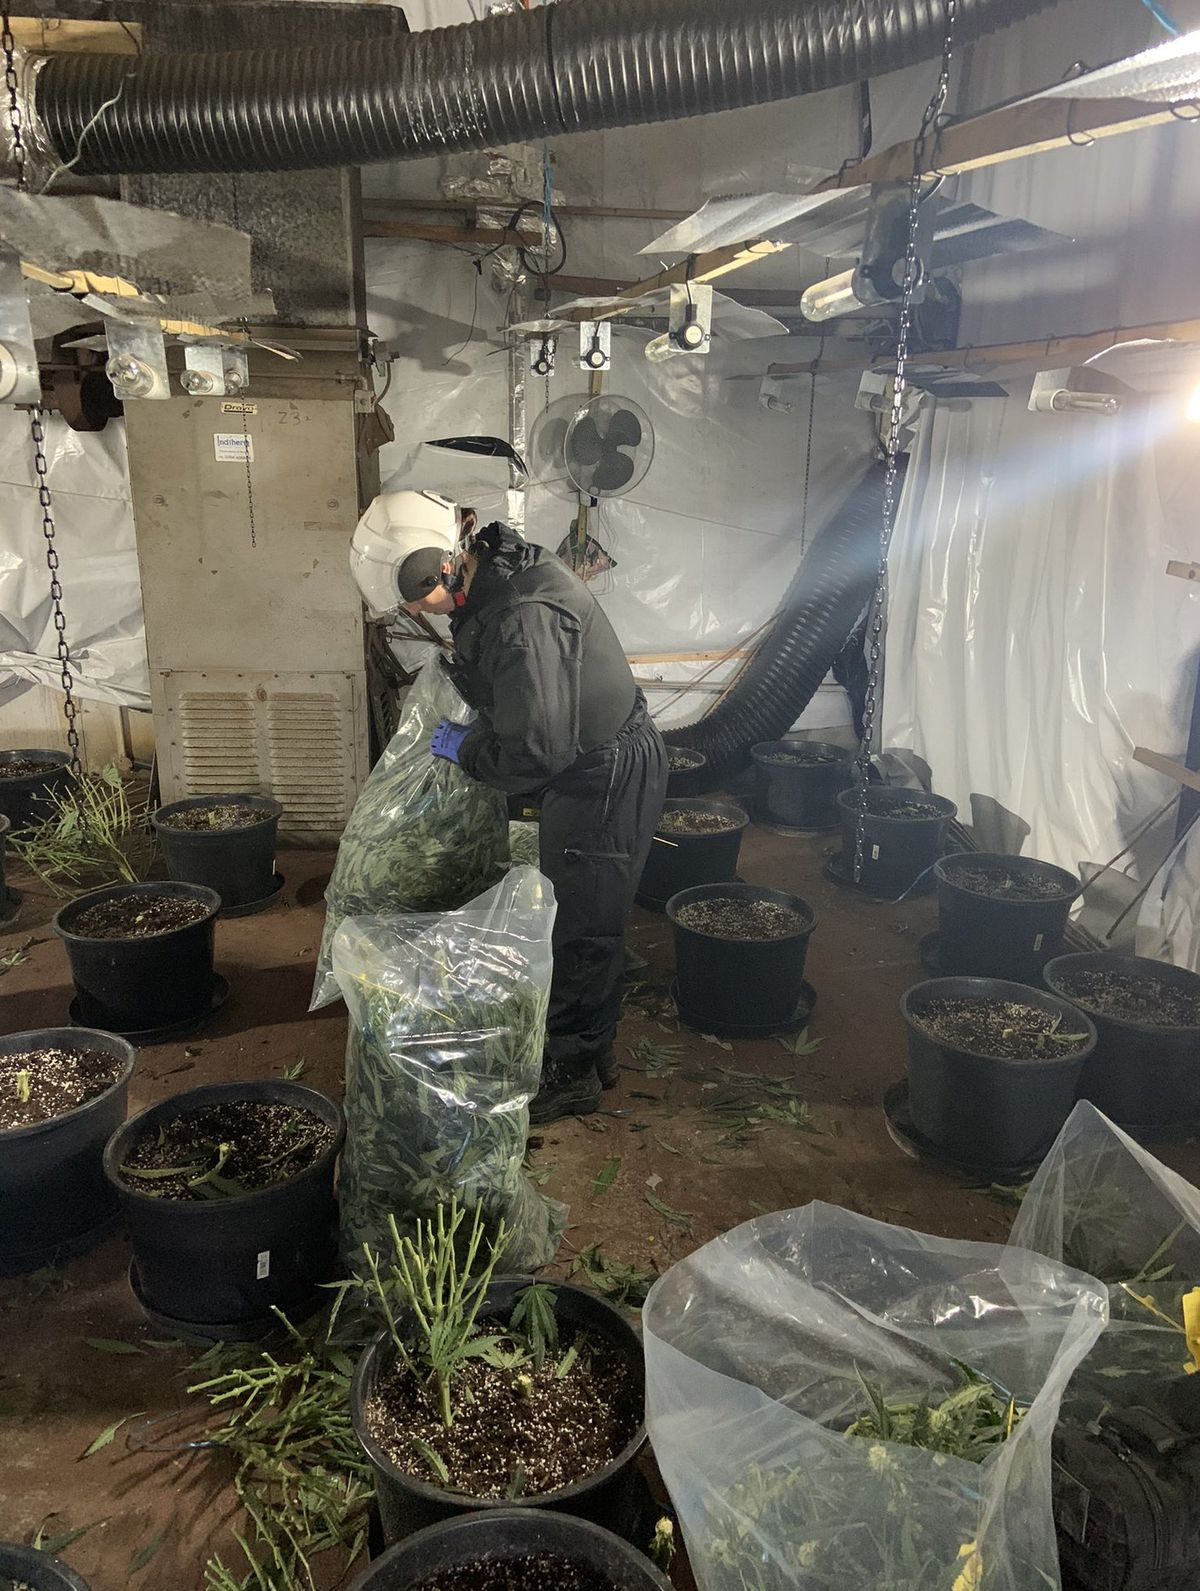 Cannabis disposal officers at the site in Wednesfield